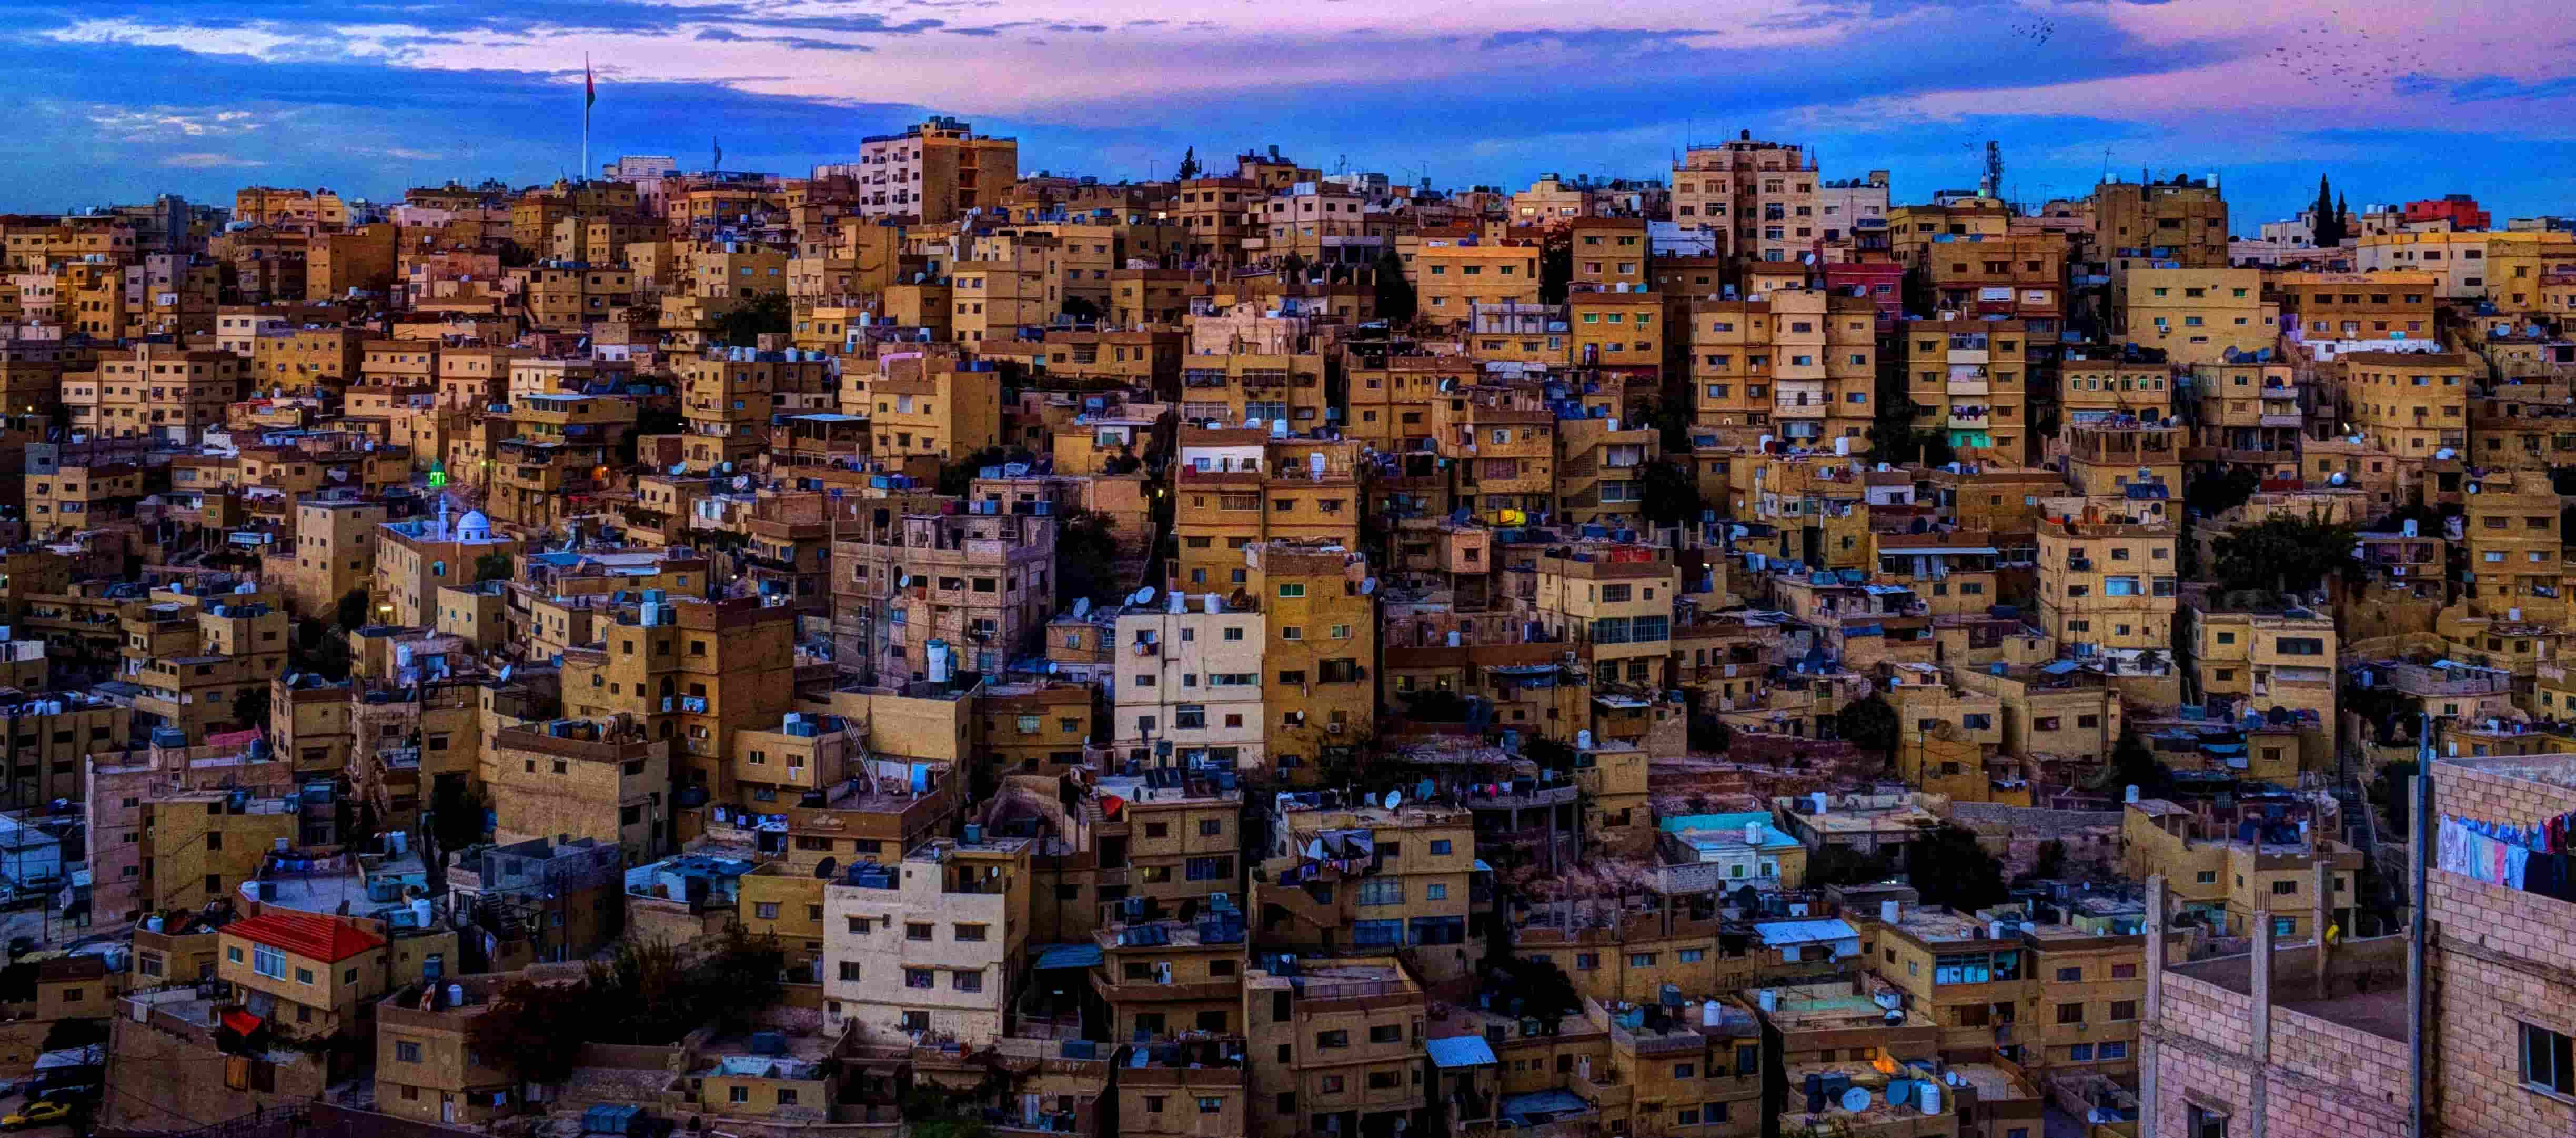 Amman, Jordan, 2013 (Photo: Mahmood Salam/Flickr)